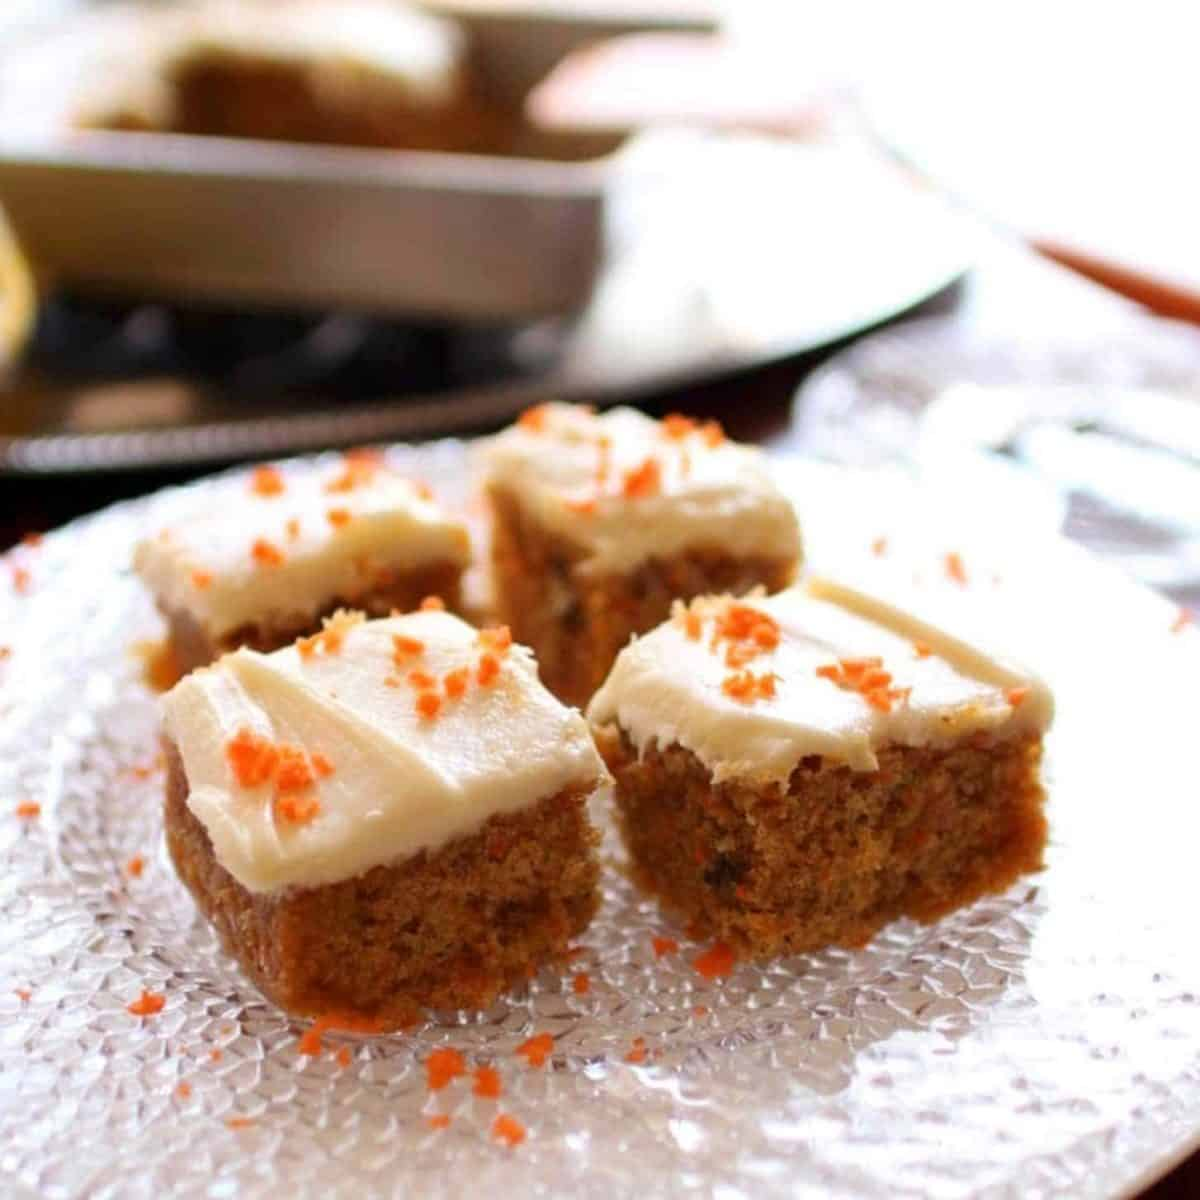 four squares of carrot cake on a clear plate next to a partially cut cake.